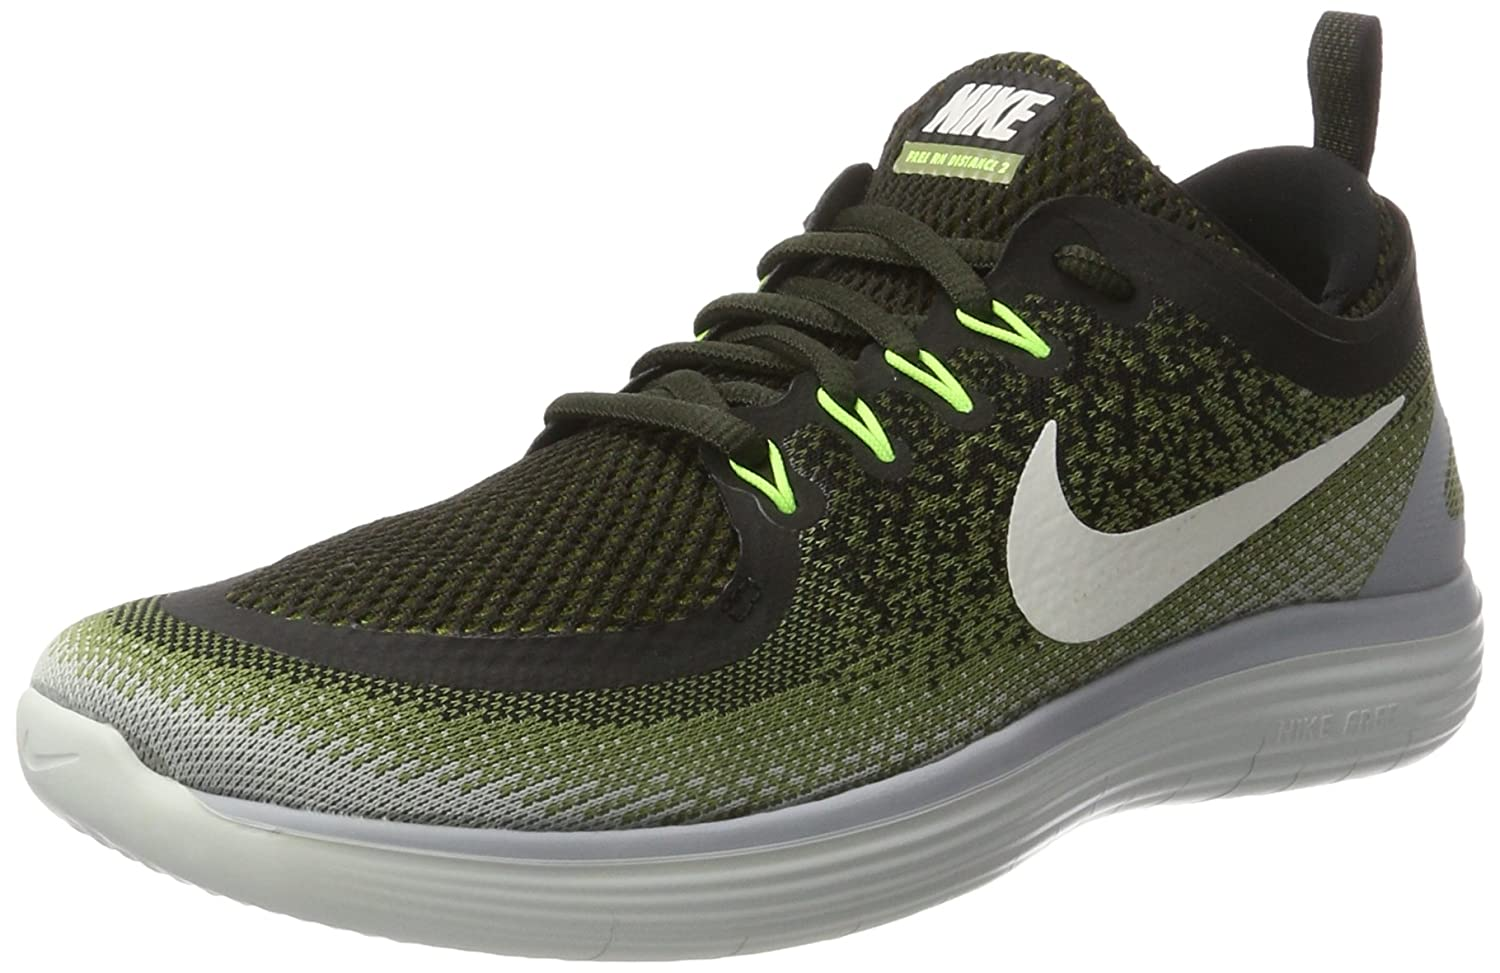 low priced 8e430 94963 NIKE Mens Free RN Distance 2 Running Shoes (14 D(M) US)  Amazon.ca  Shoes    Handbags